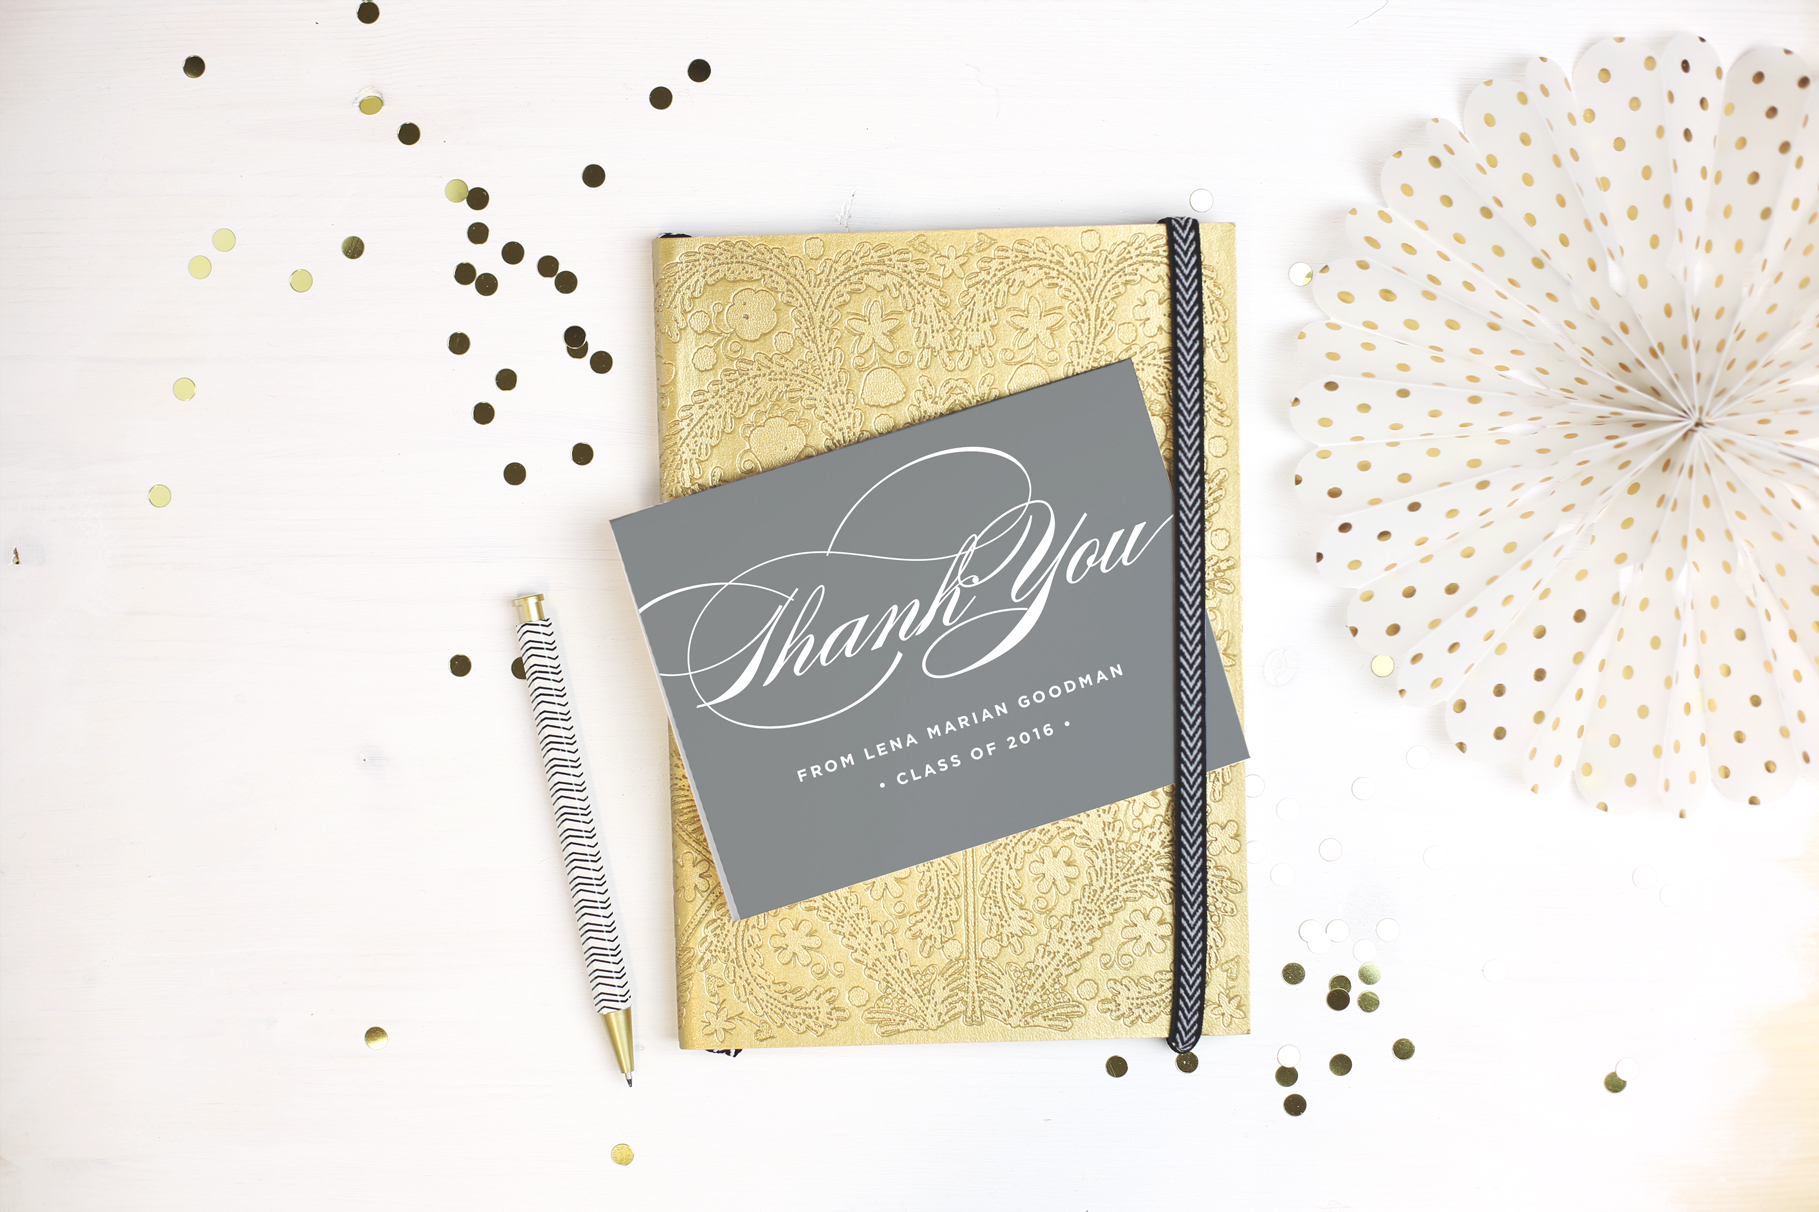 Basic Invite- Graduation Thank You Cards